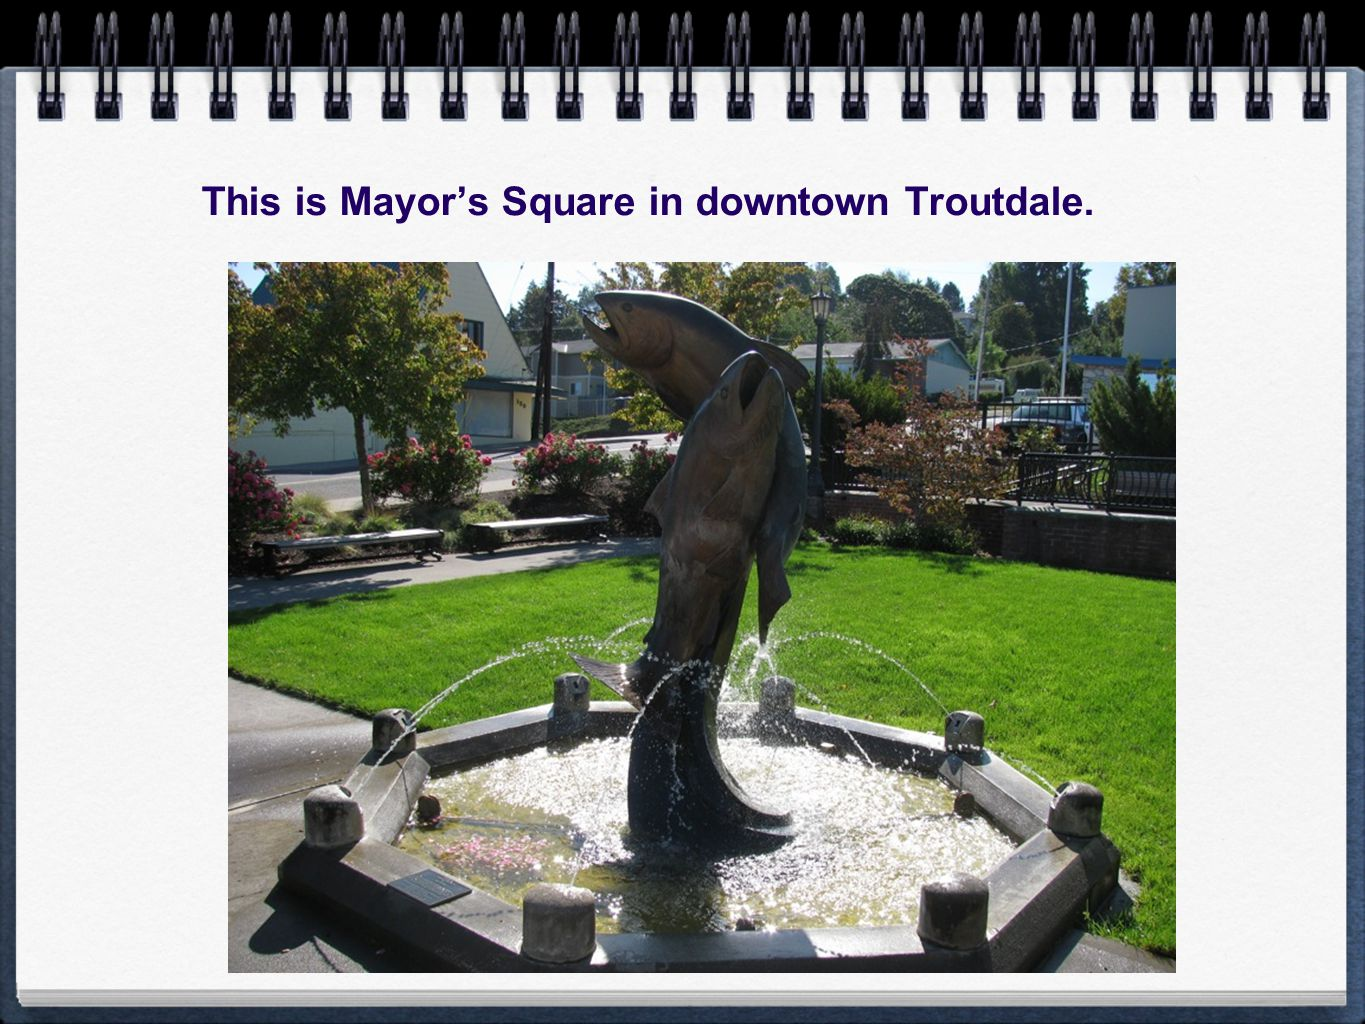 This is Mayor's Square in downtown Troutdale.